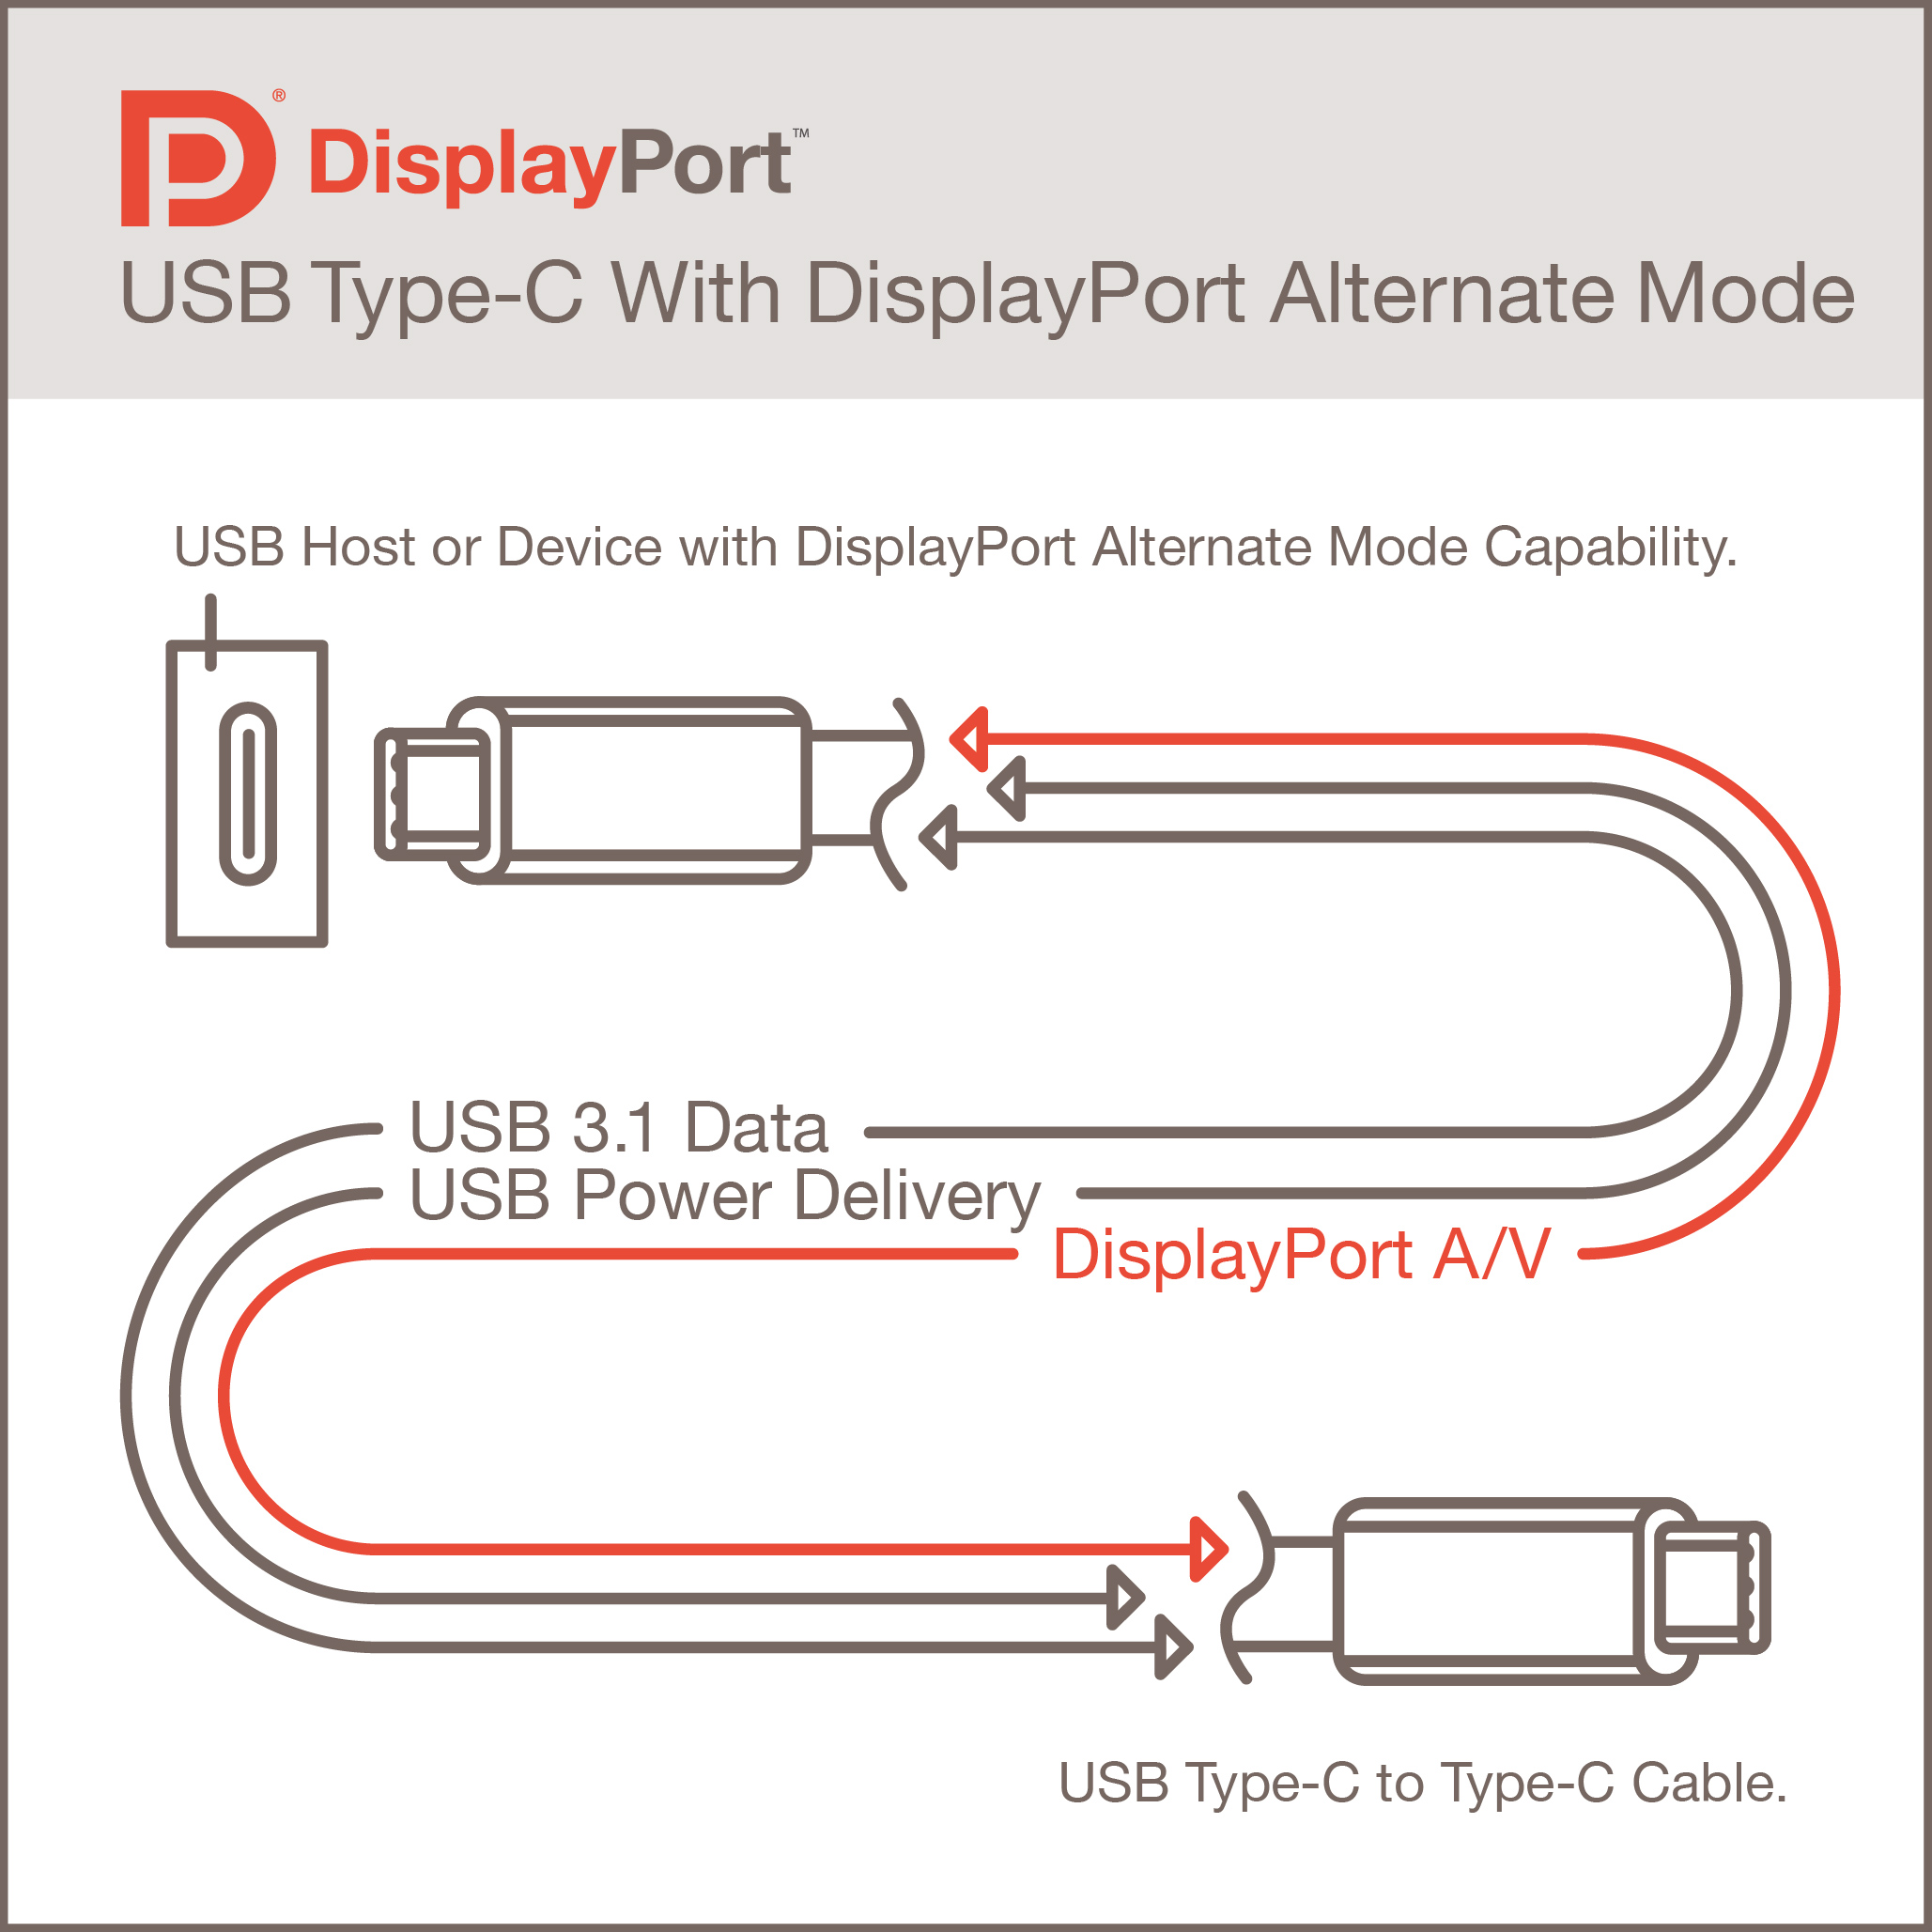 displayport alternate mode for usb type